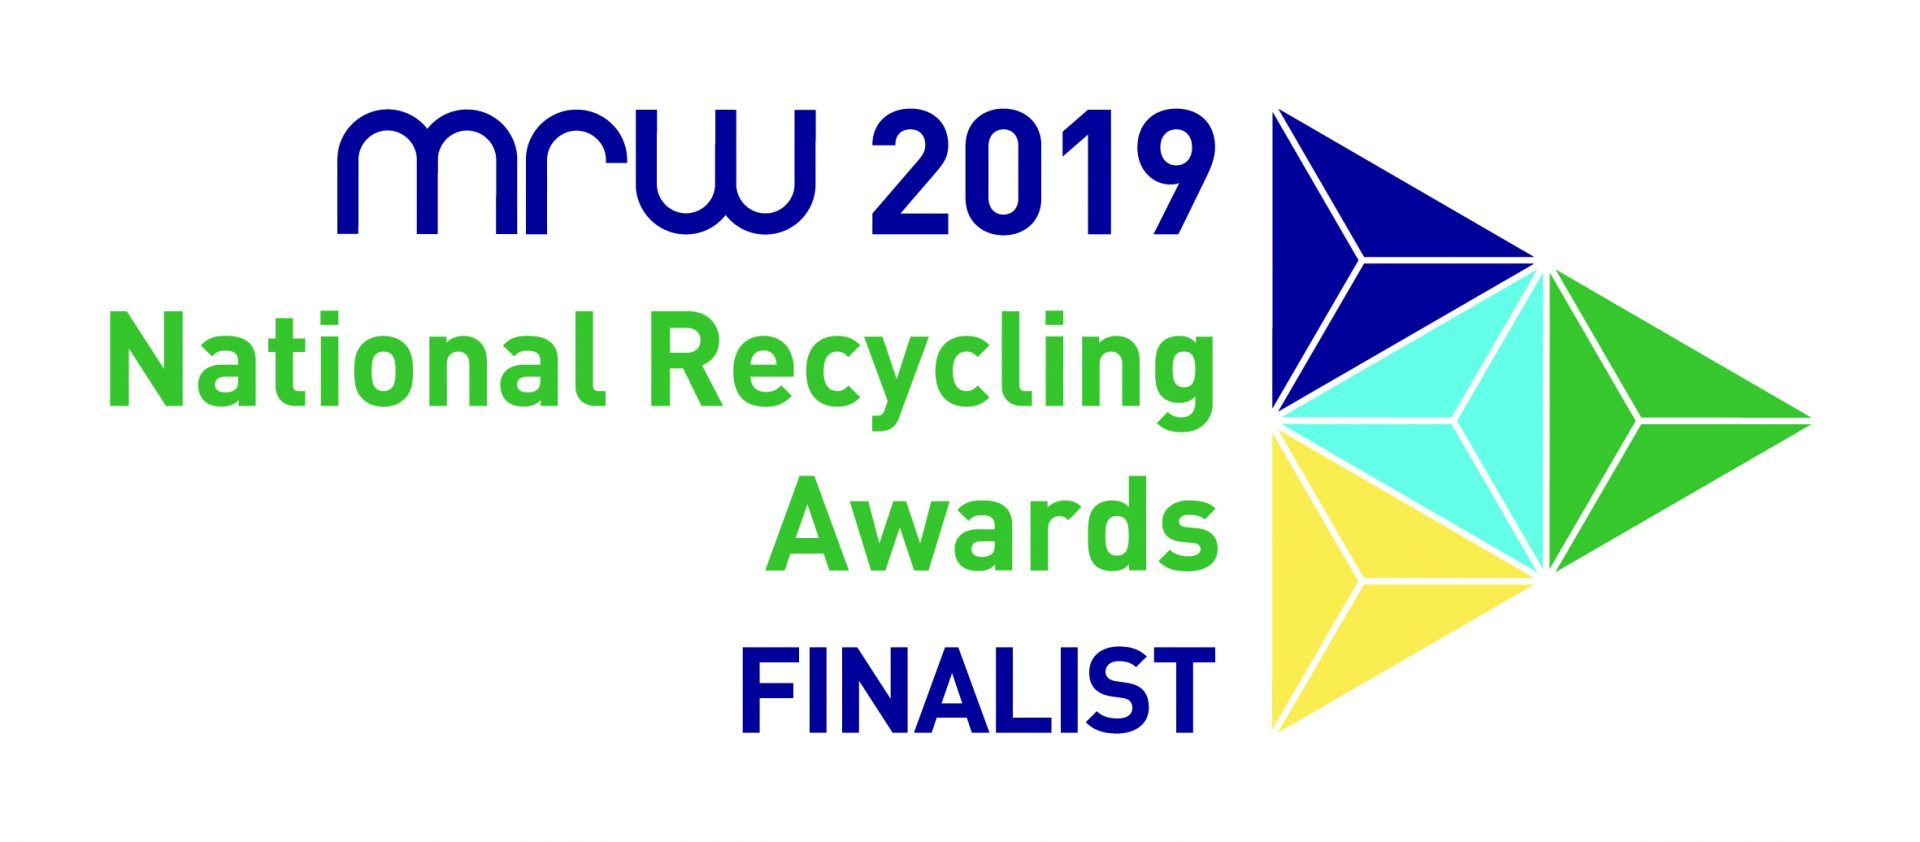 Just Clear is a Finalist in Recycling Awards